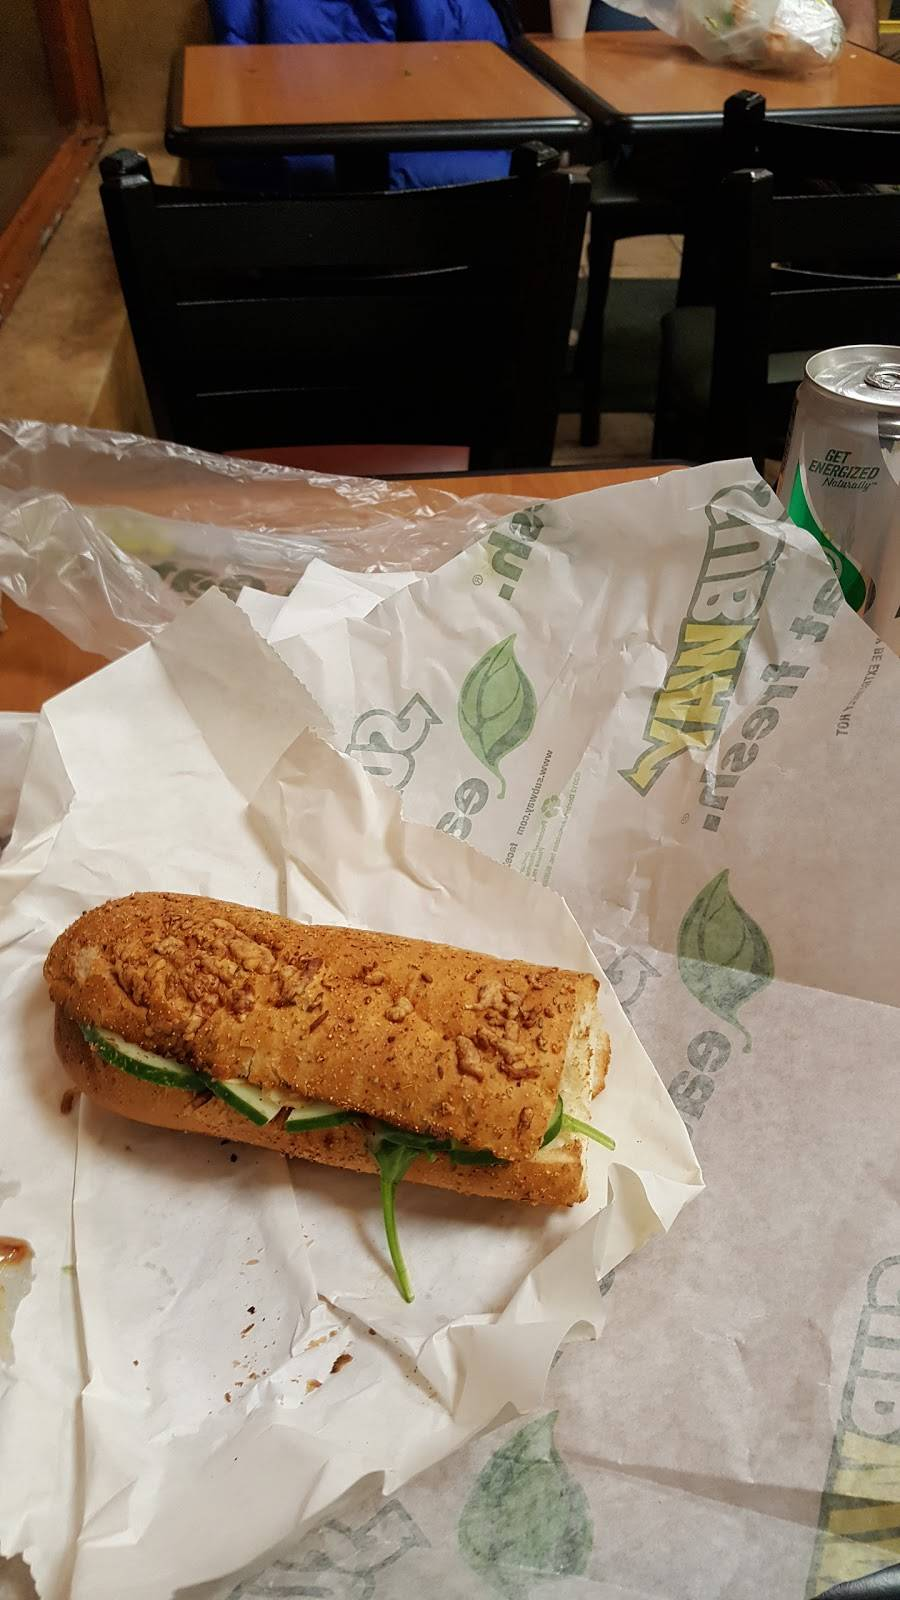 Subway Restaurants | restaurant | 600 W 52nd St, New York, NY 10019, USA | 2125825800 OR +1 212-582-5800